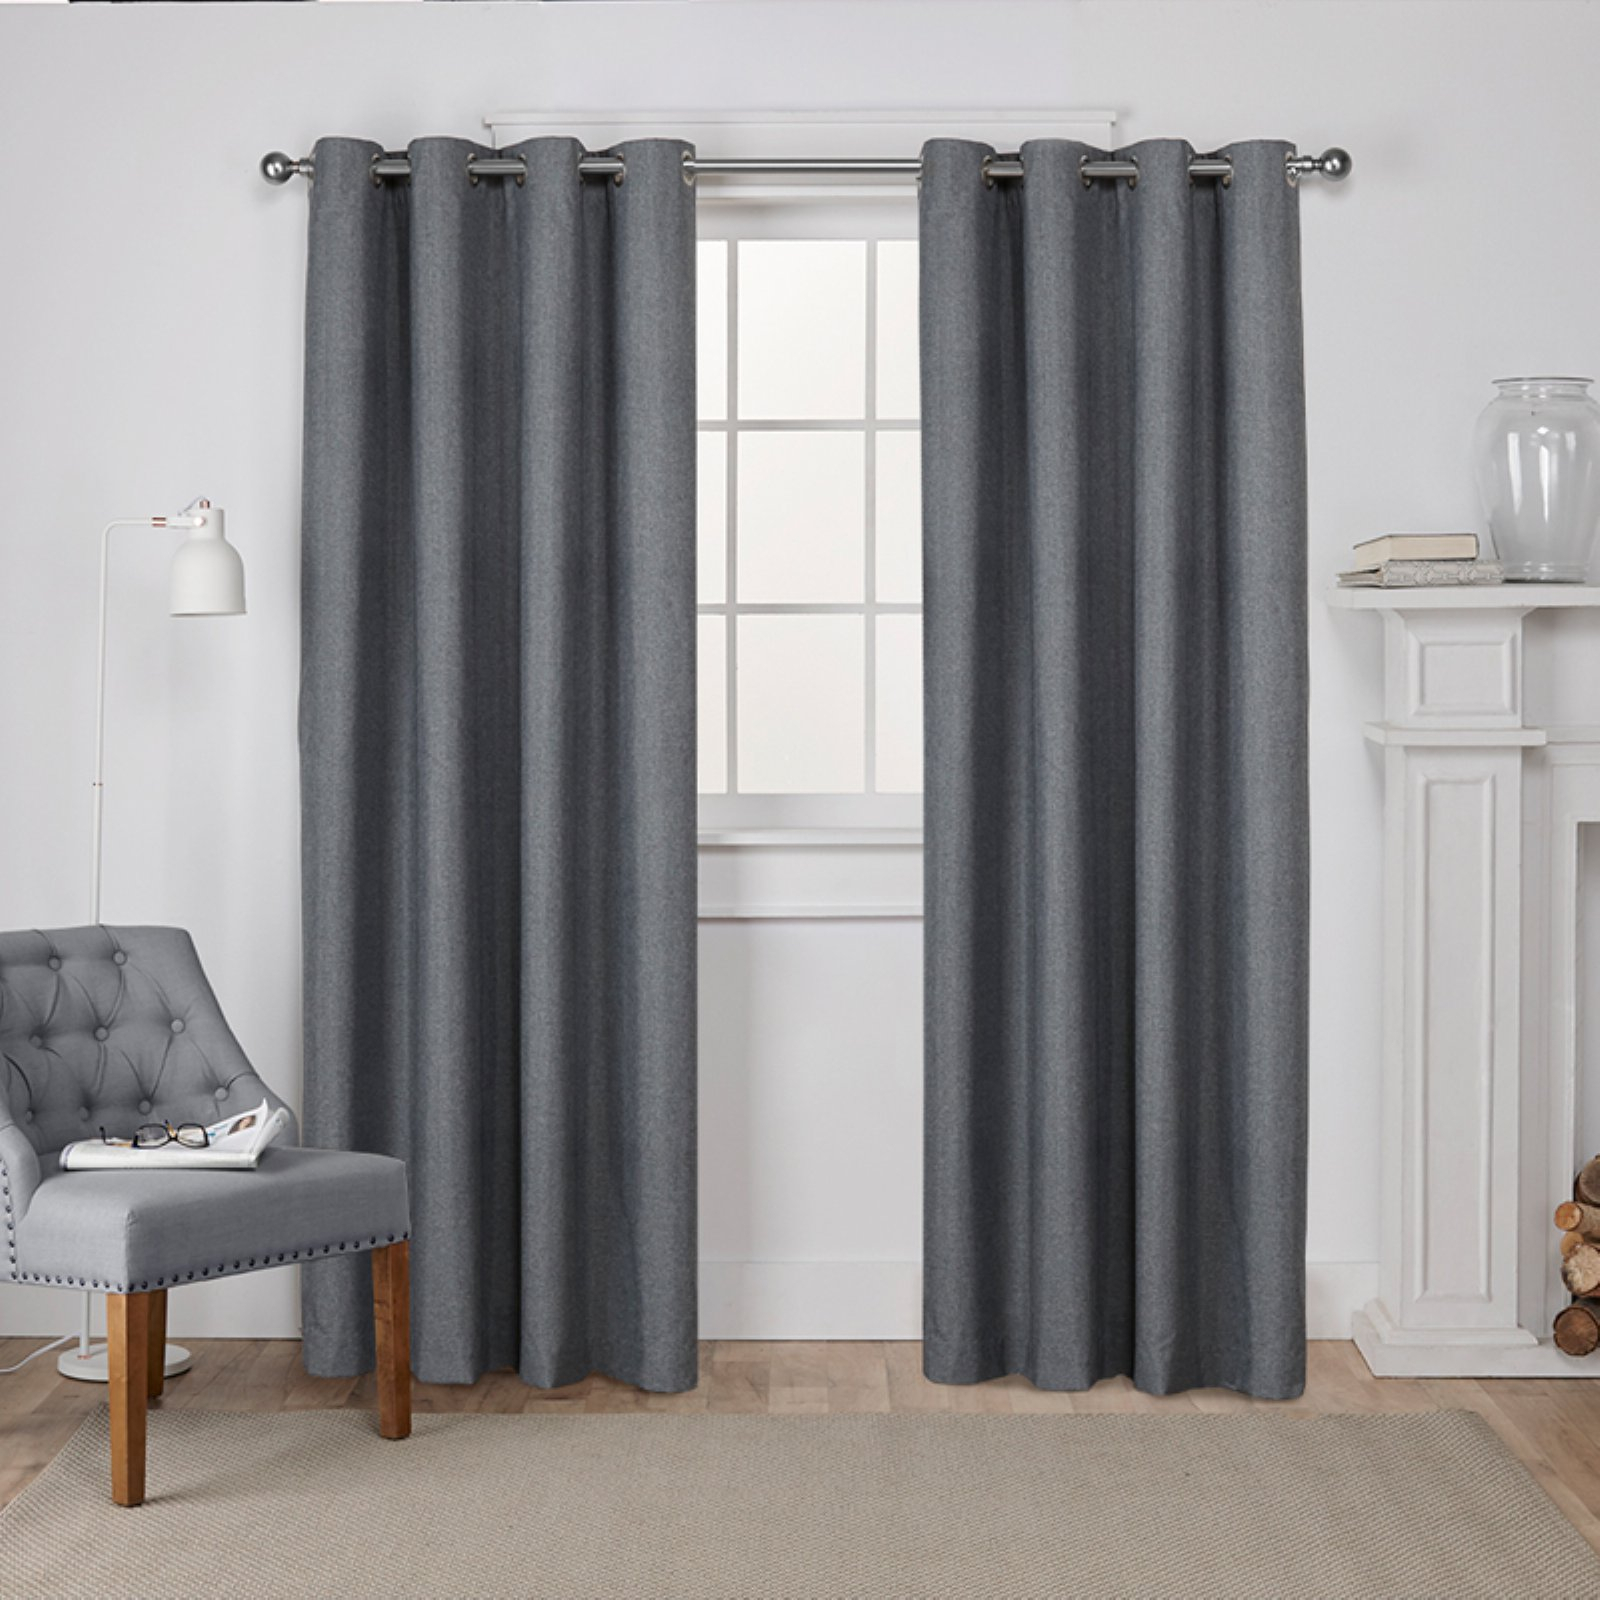 Exclusive Home Curtains 2 Pack London Textured Linen Thermal Grommet Top Curtain Panels Inside Thermal Textured Linen Grommet Top Curtain Panel Pairs (View 6 of 30)